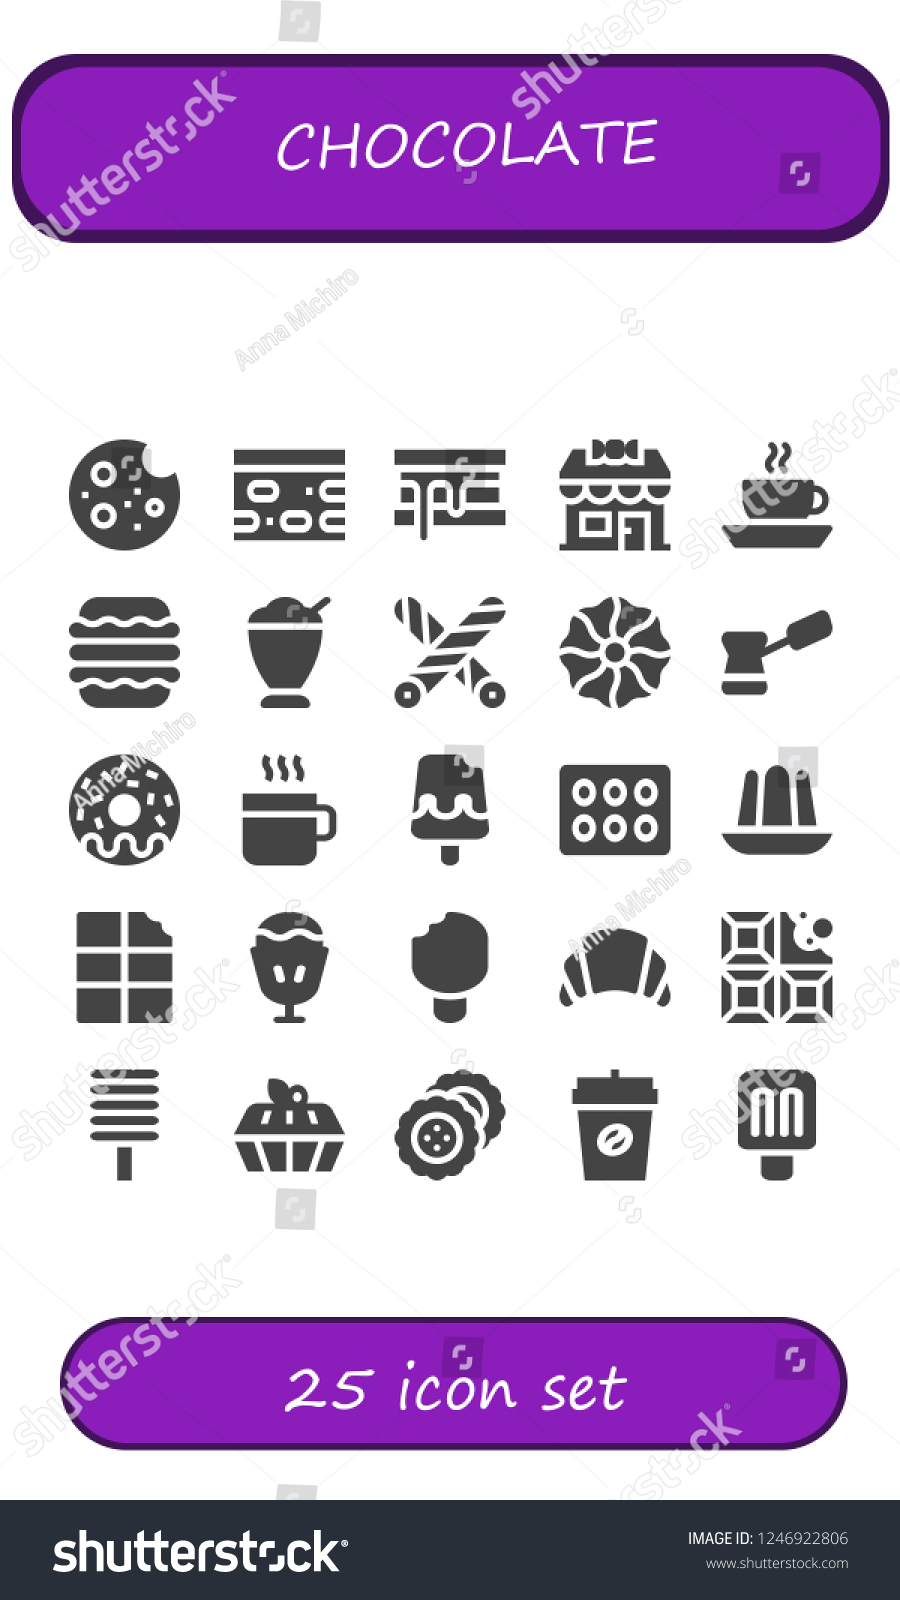 medium resolution of vector icons pack of 25 filled chocolate icons simple modern icons about cookie